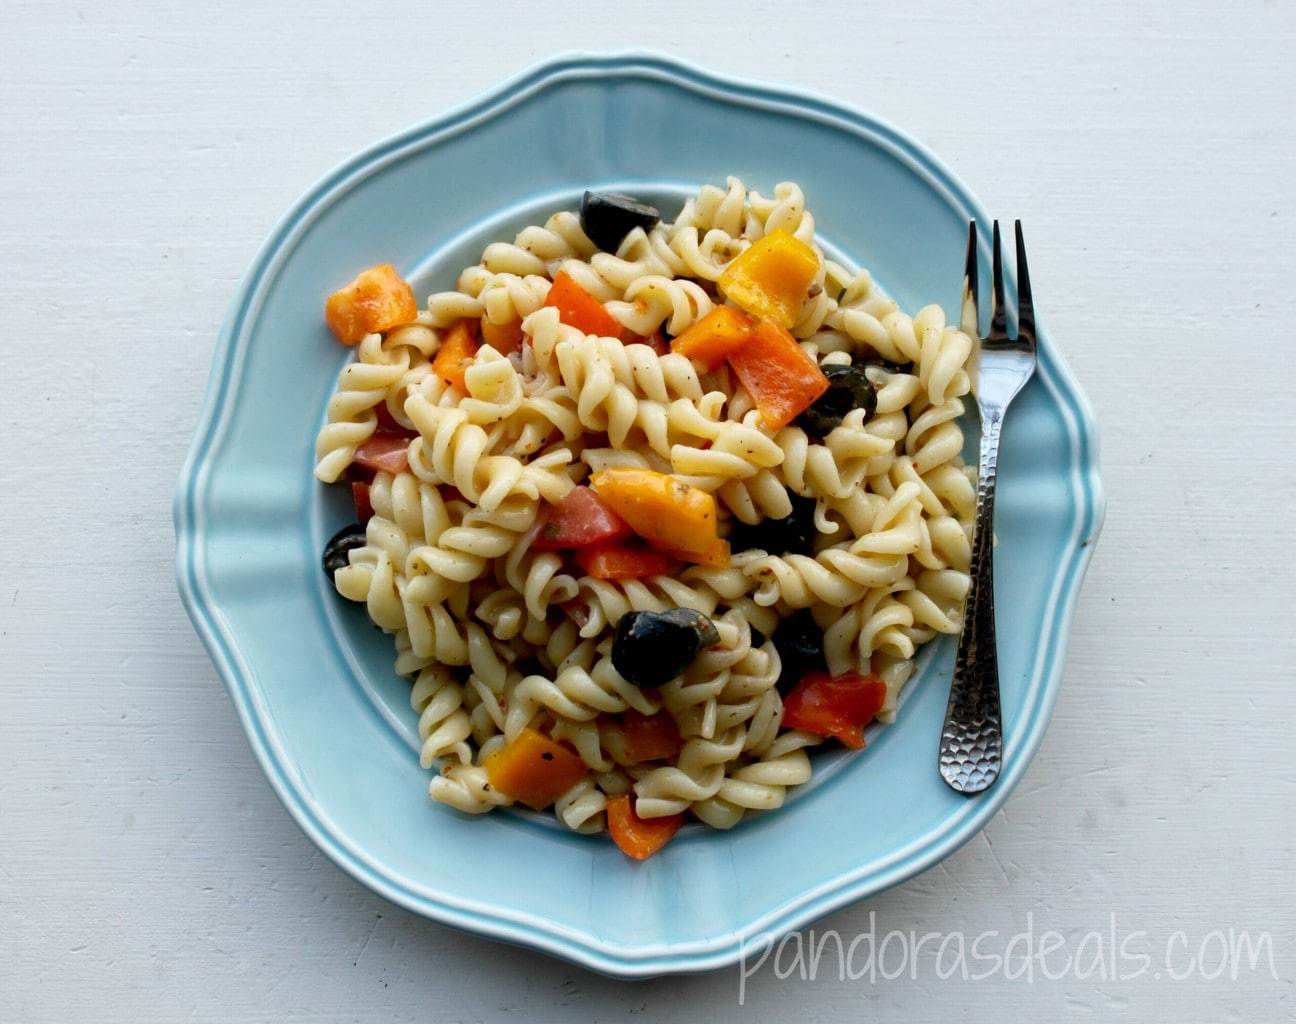 pasta salad with peppers and olives on light blue plate